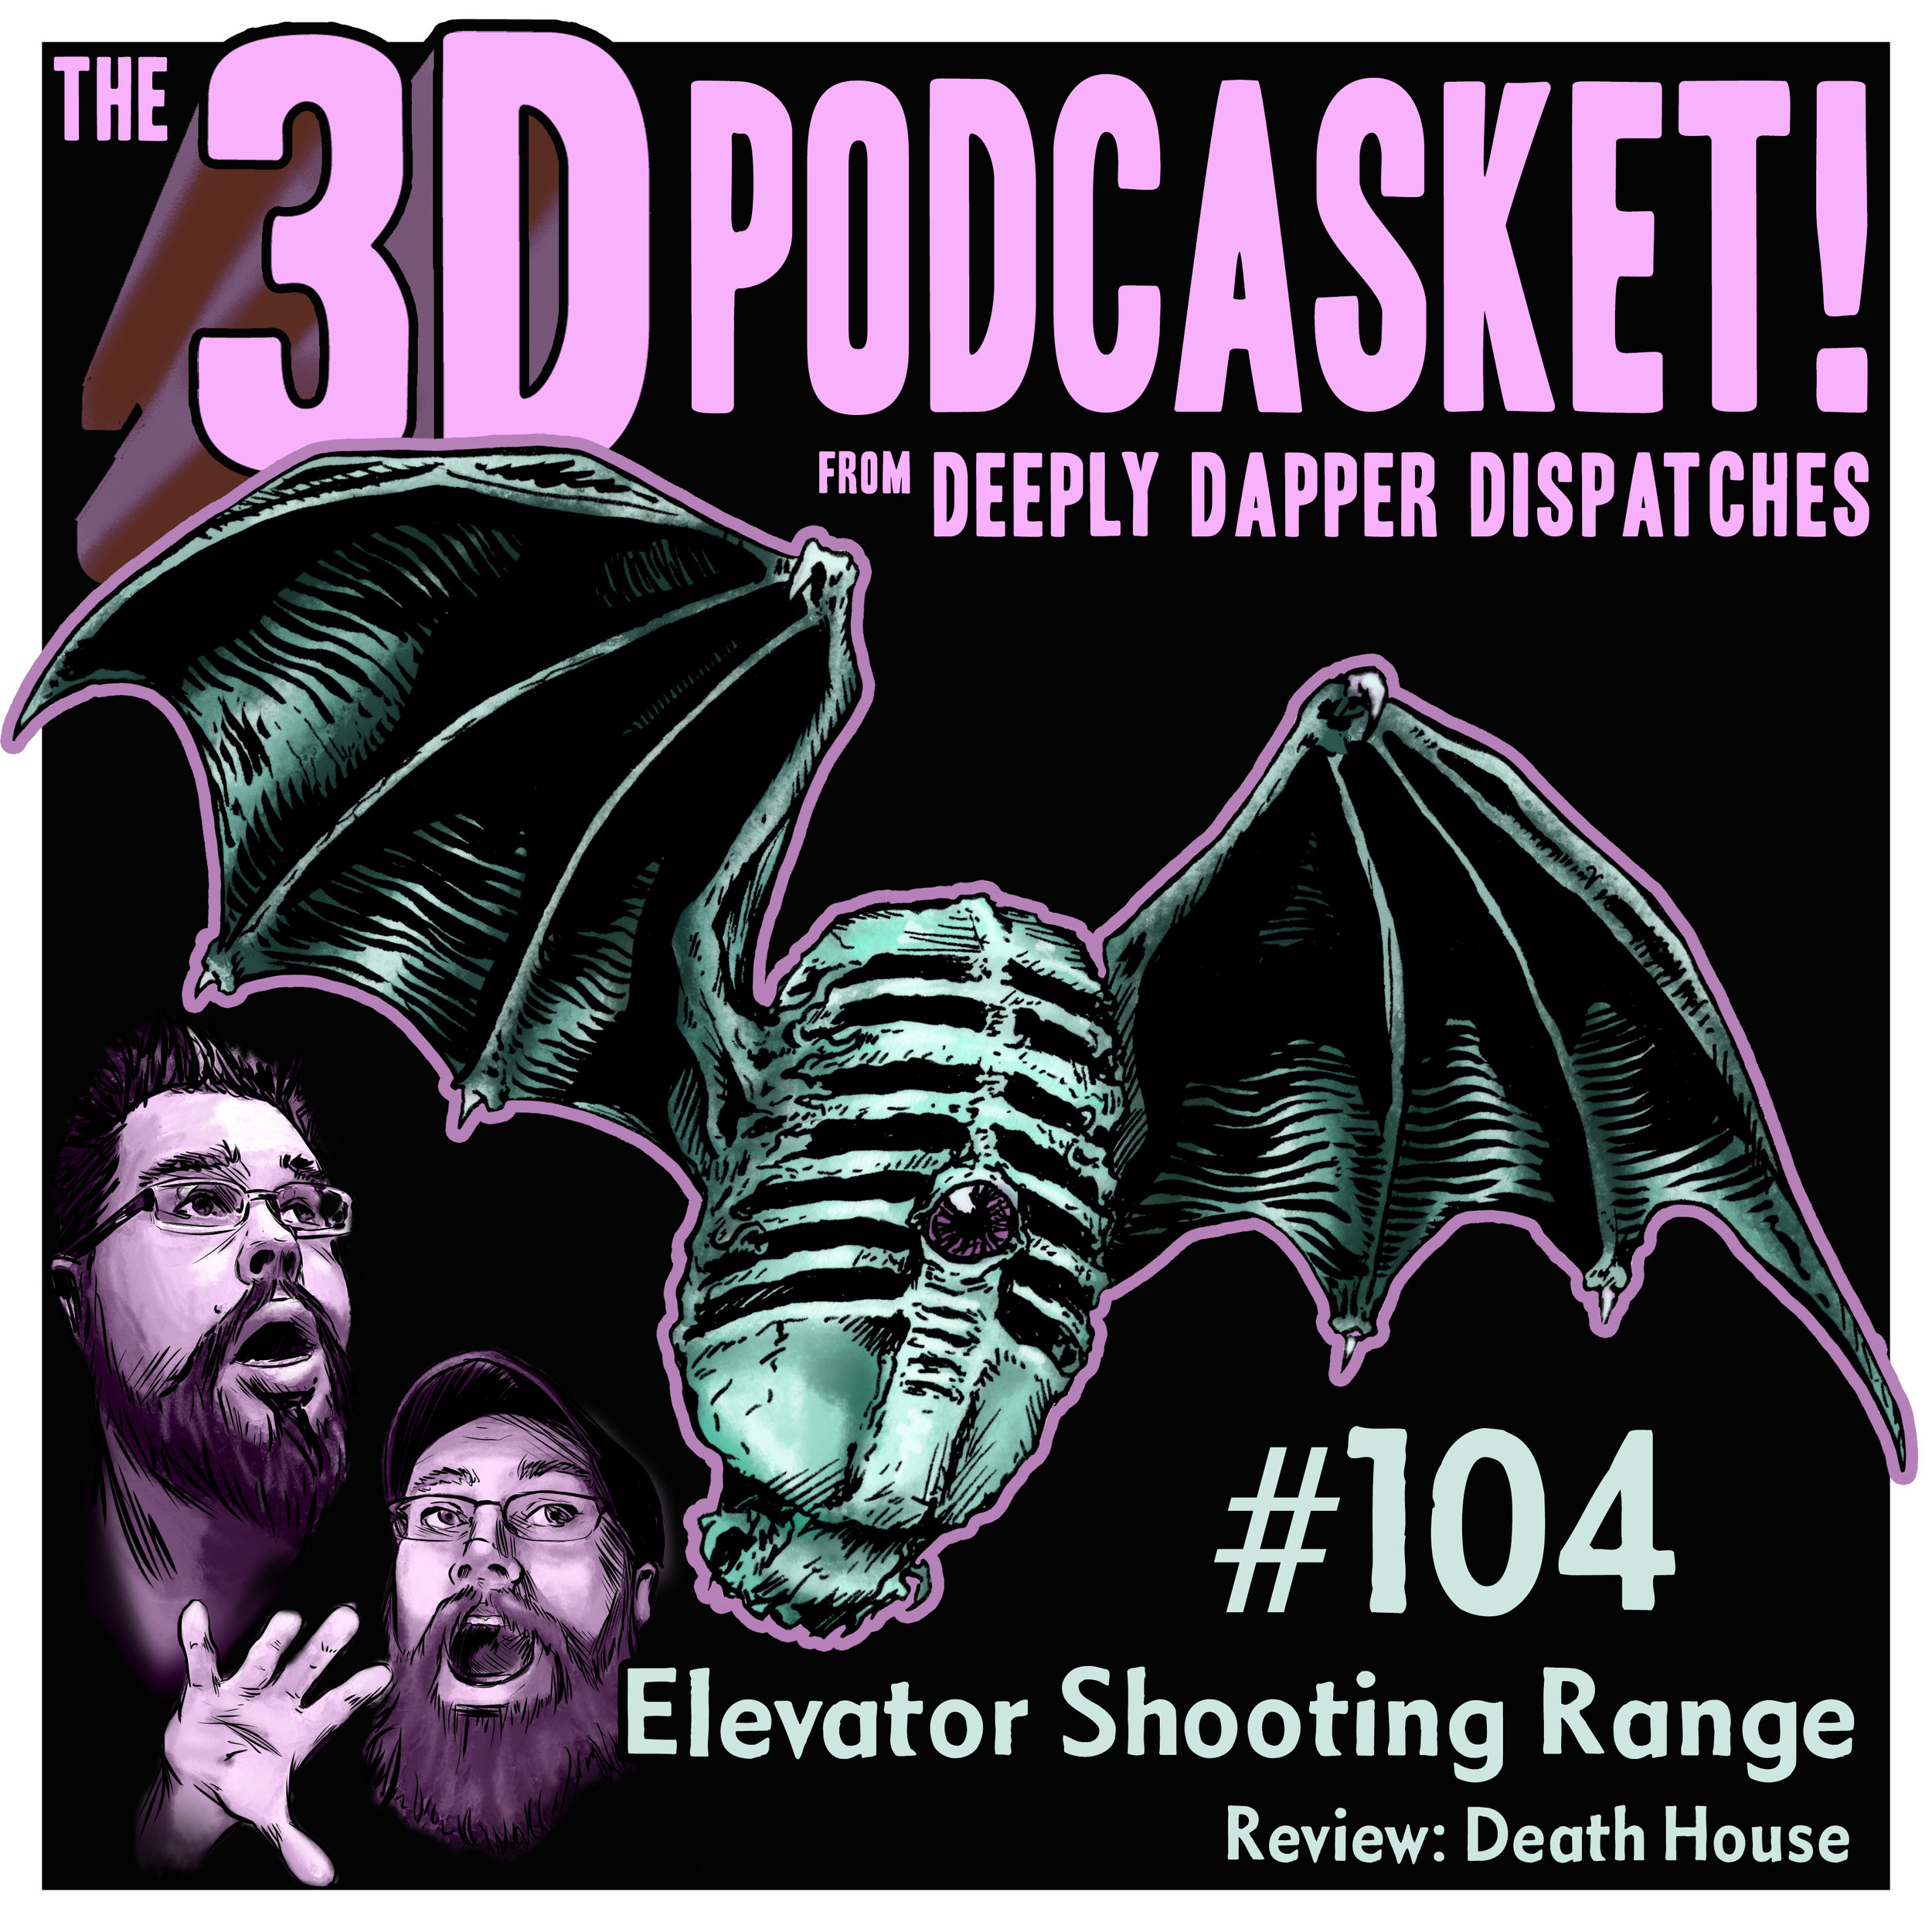 3D Podcasket Episode 104 Cover - Death House Review